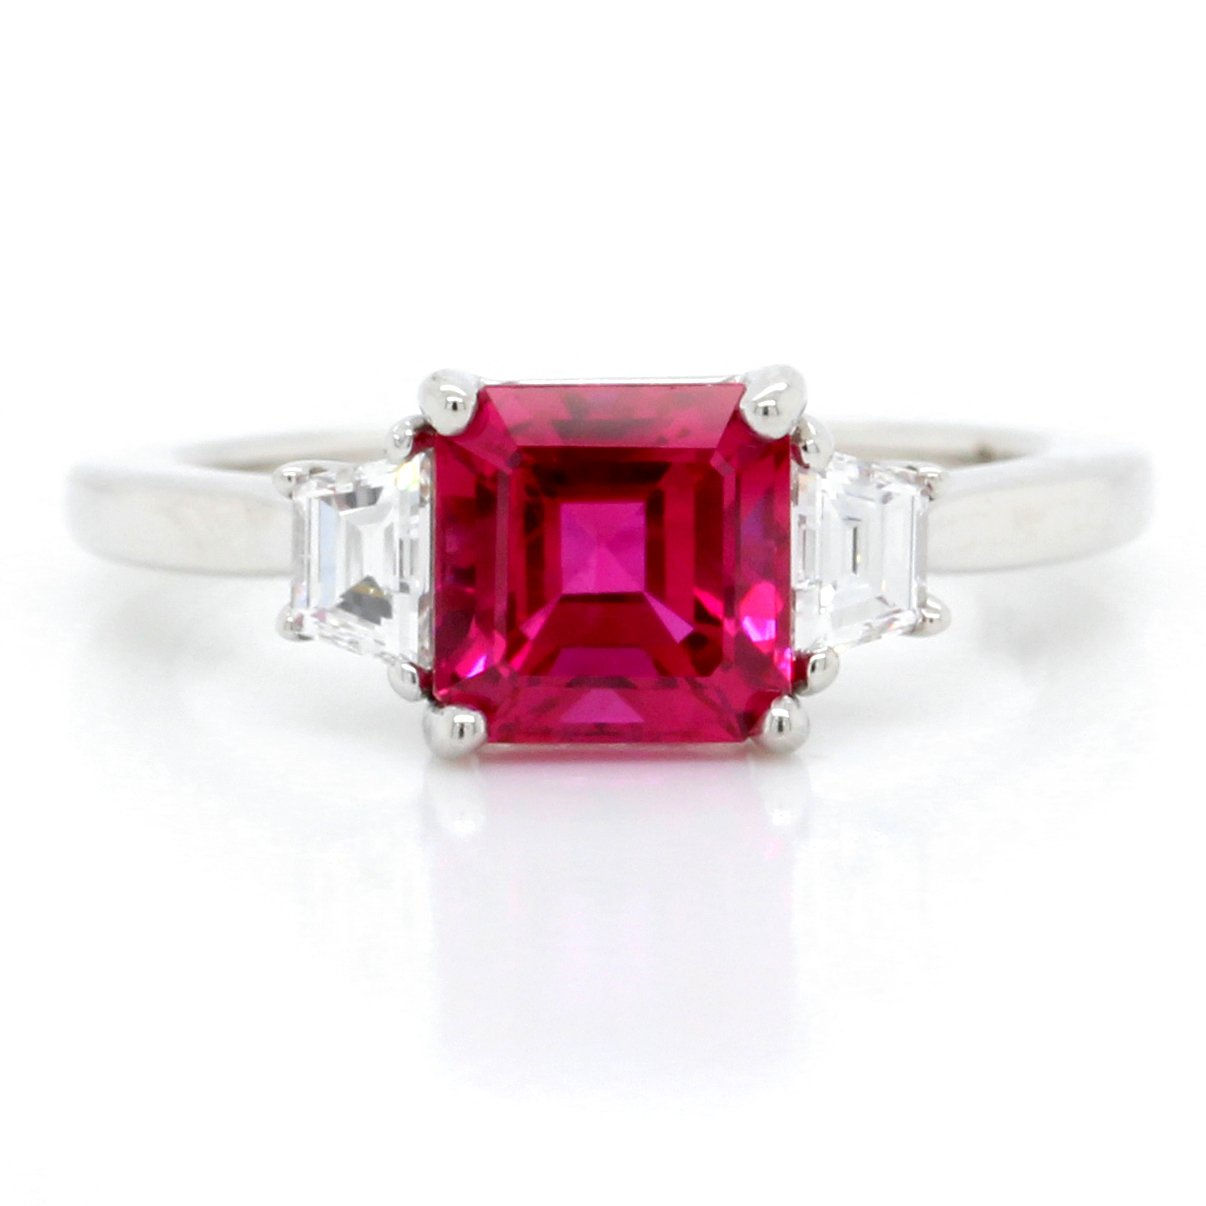 Platinum Three-Stone Emerald Cut Ruby and Diamond Ring